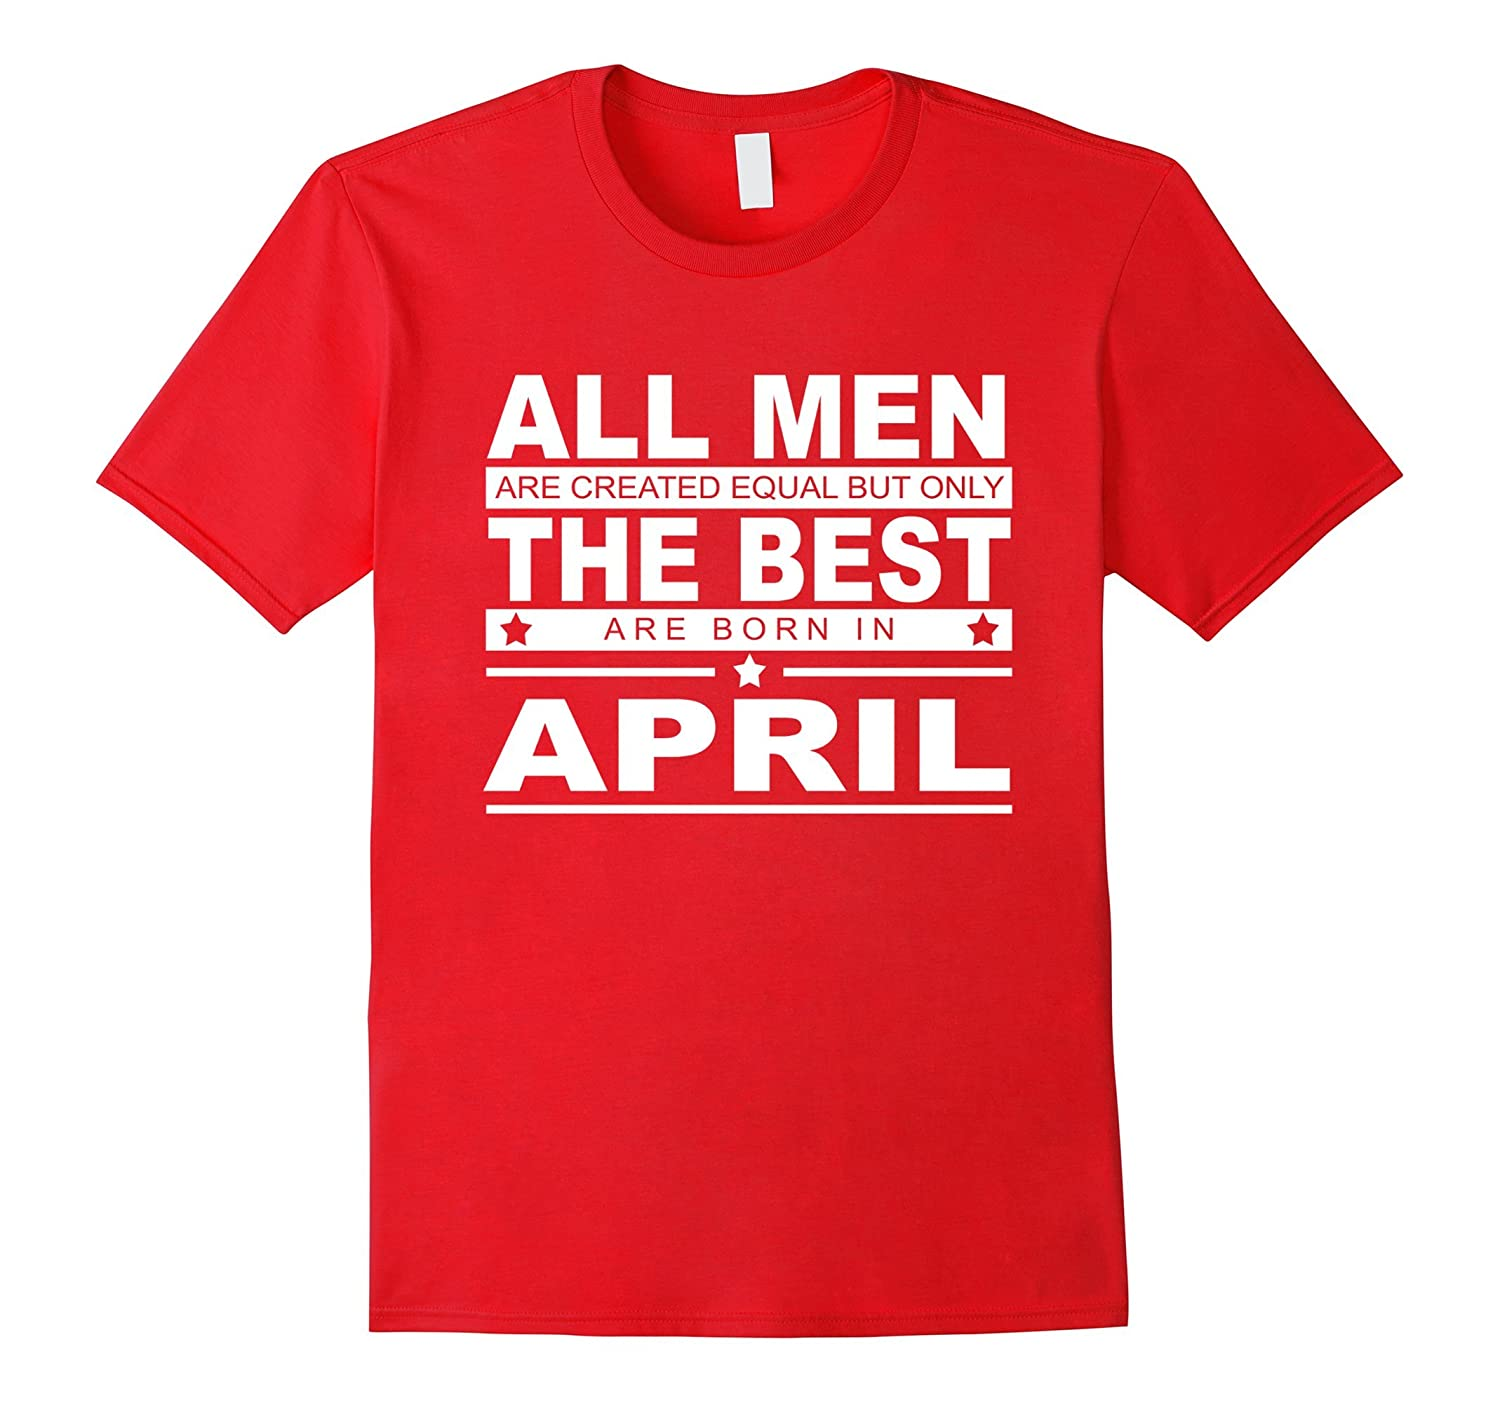 All Men Are Created Equal But Only Are Born In April T-shirt-T-Shirt